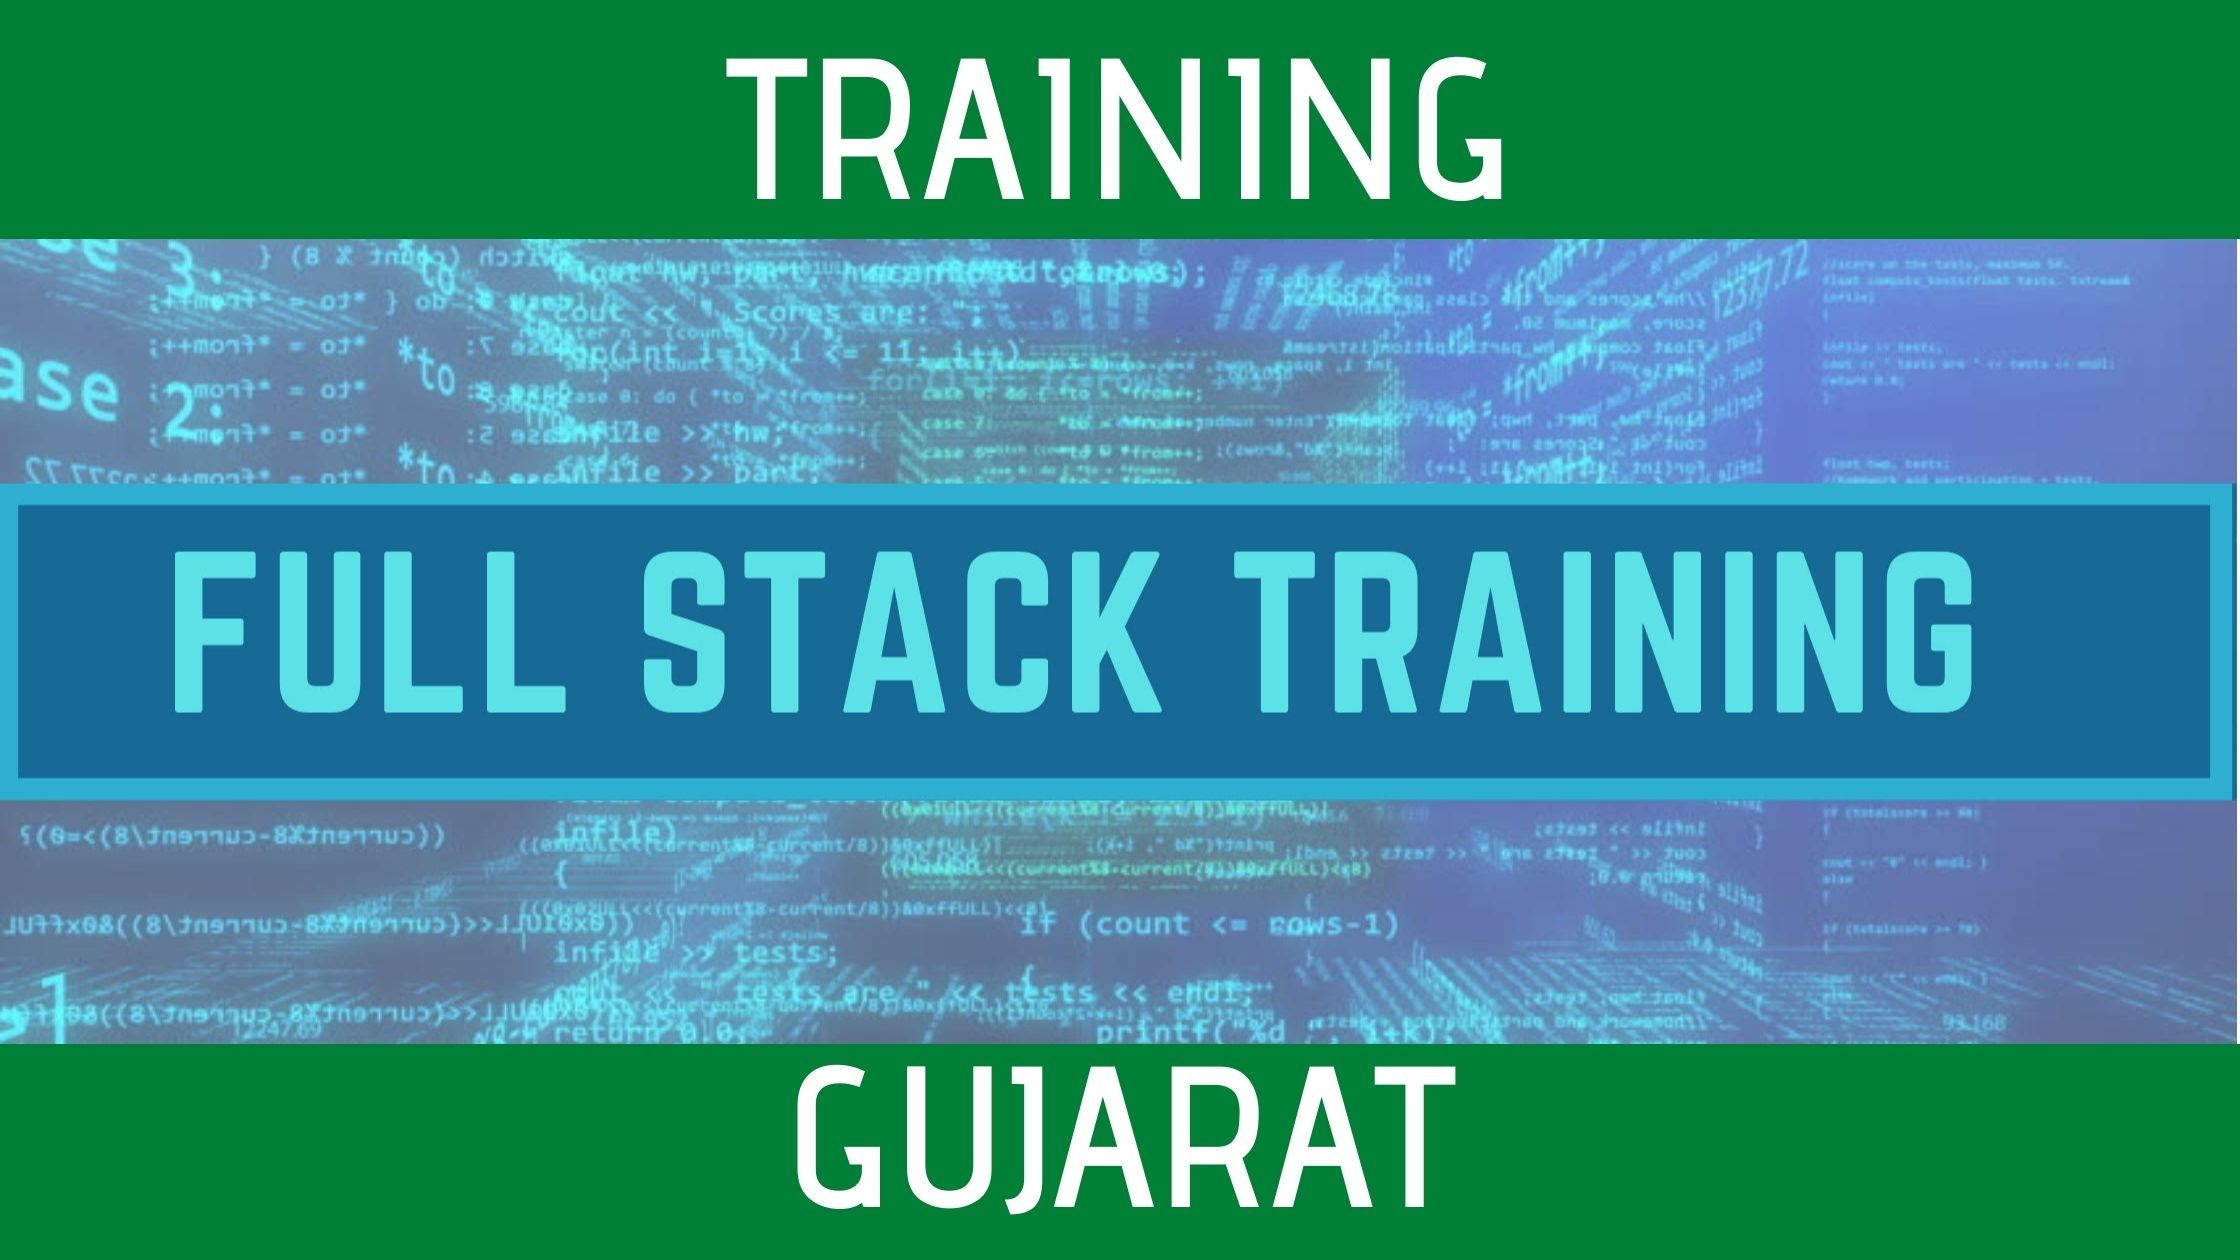 full_stack_in_gujarat -background.jpeg